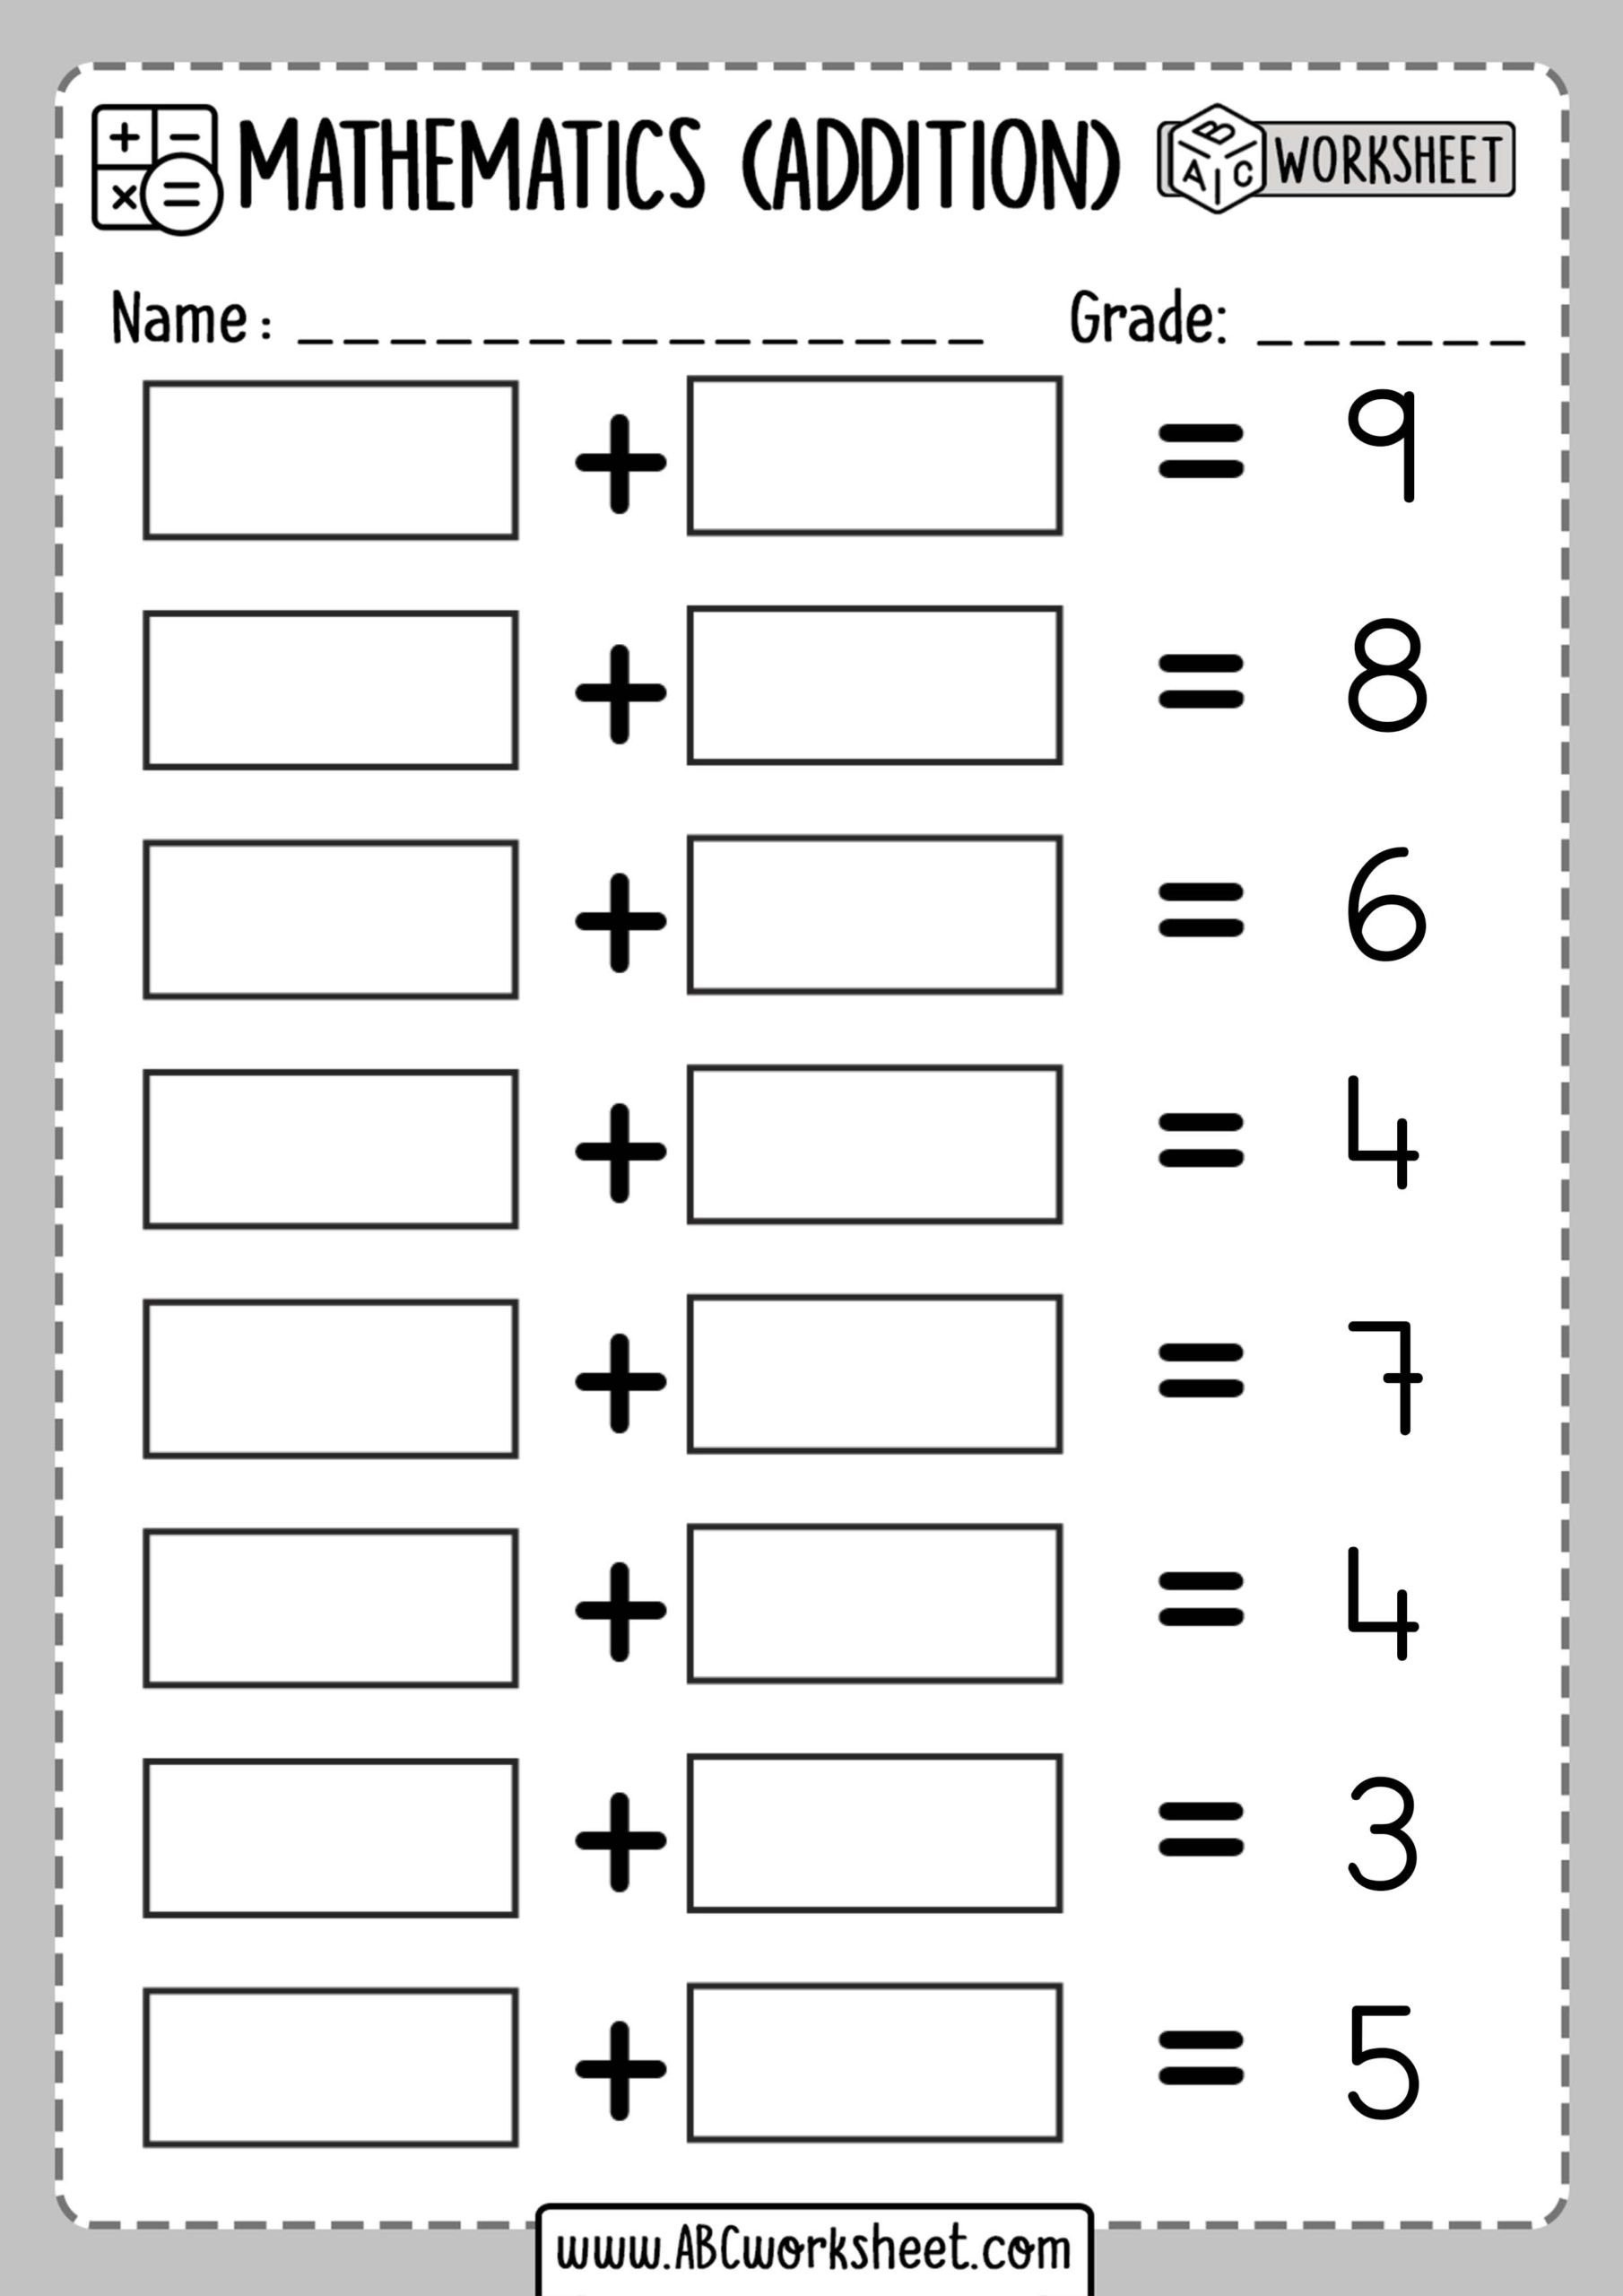 Missing Addend Worksheets First Grade Missing Addend Worksheet 6